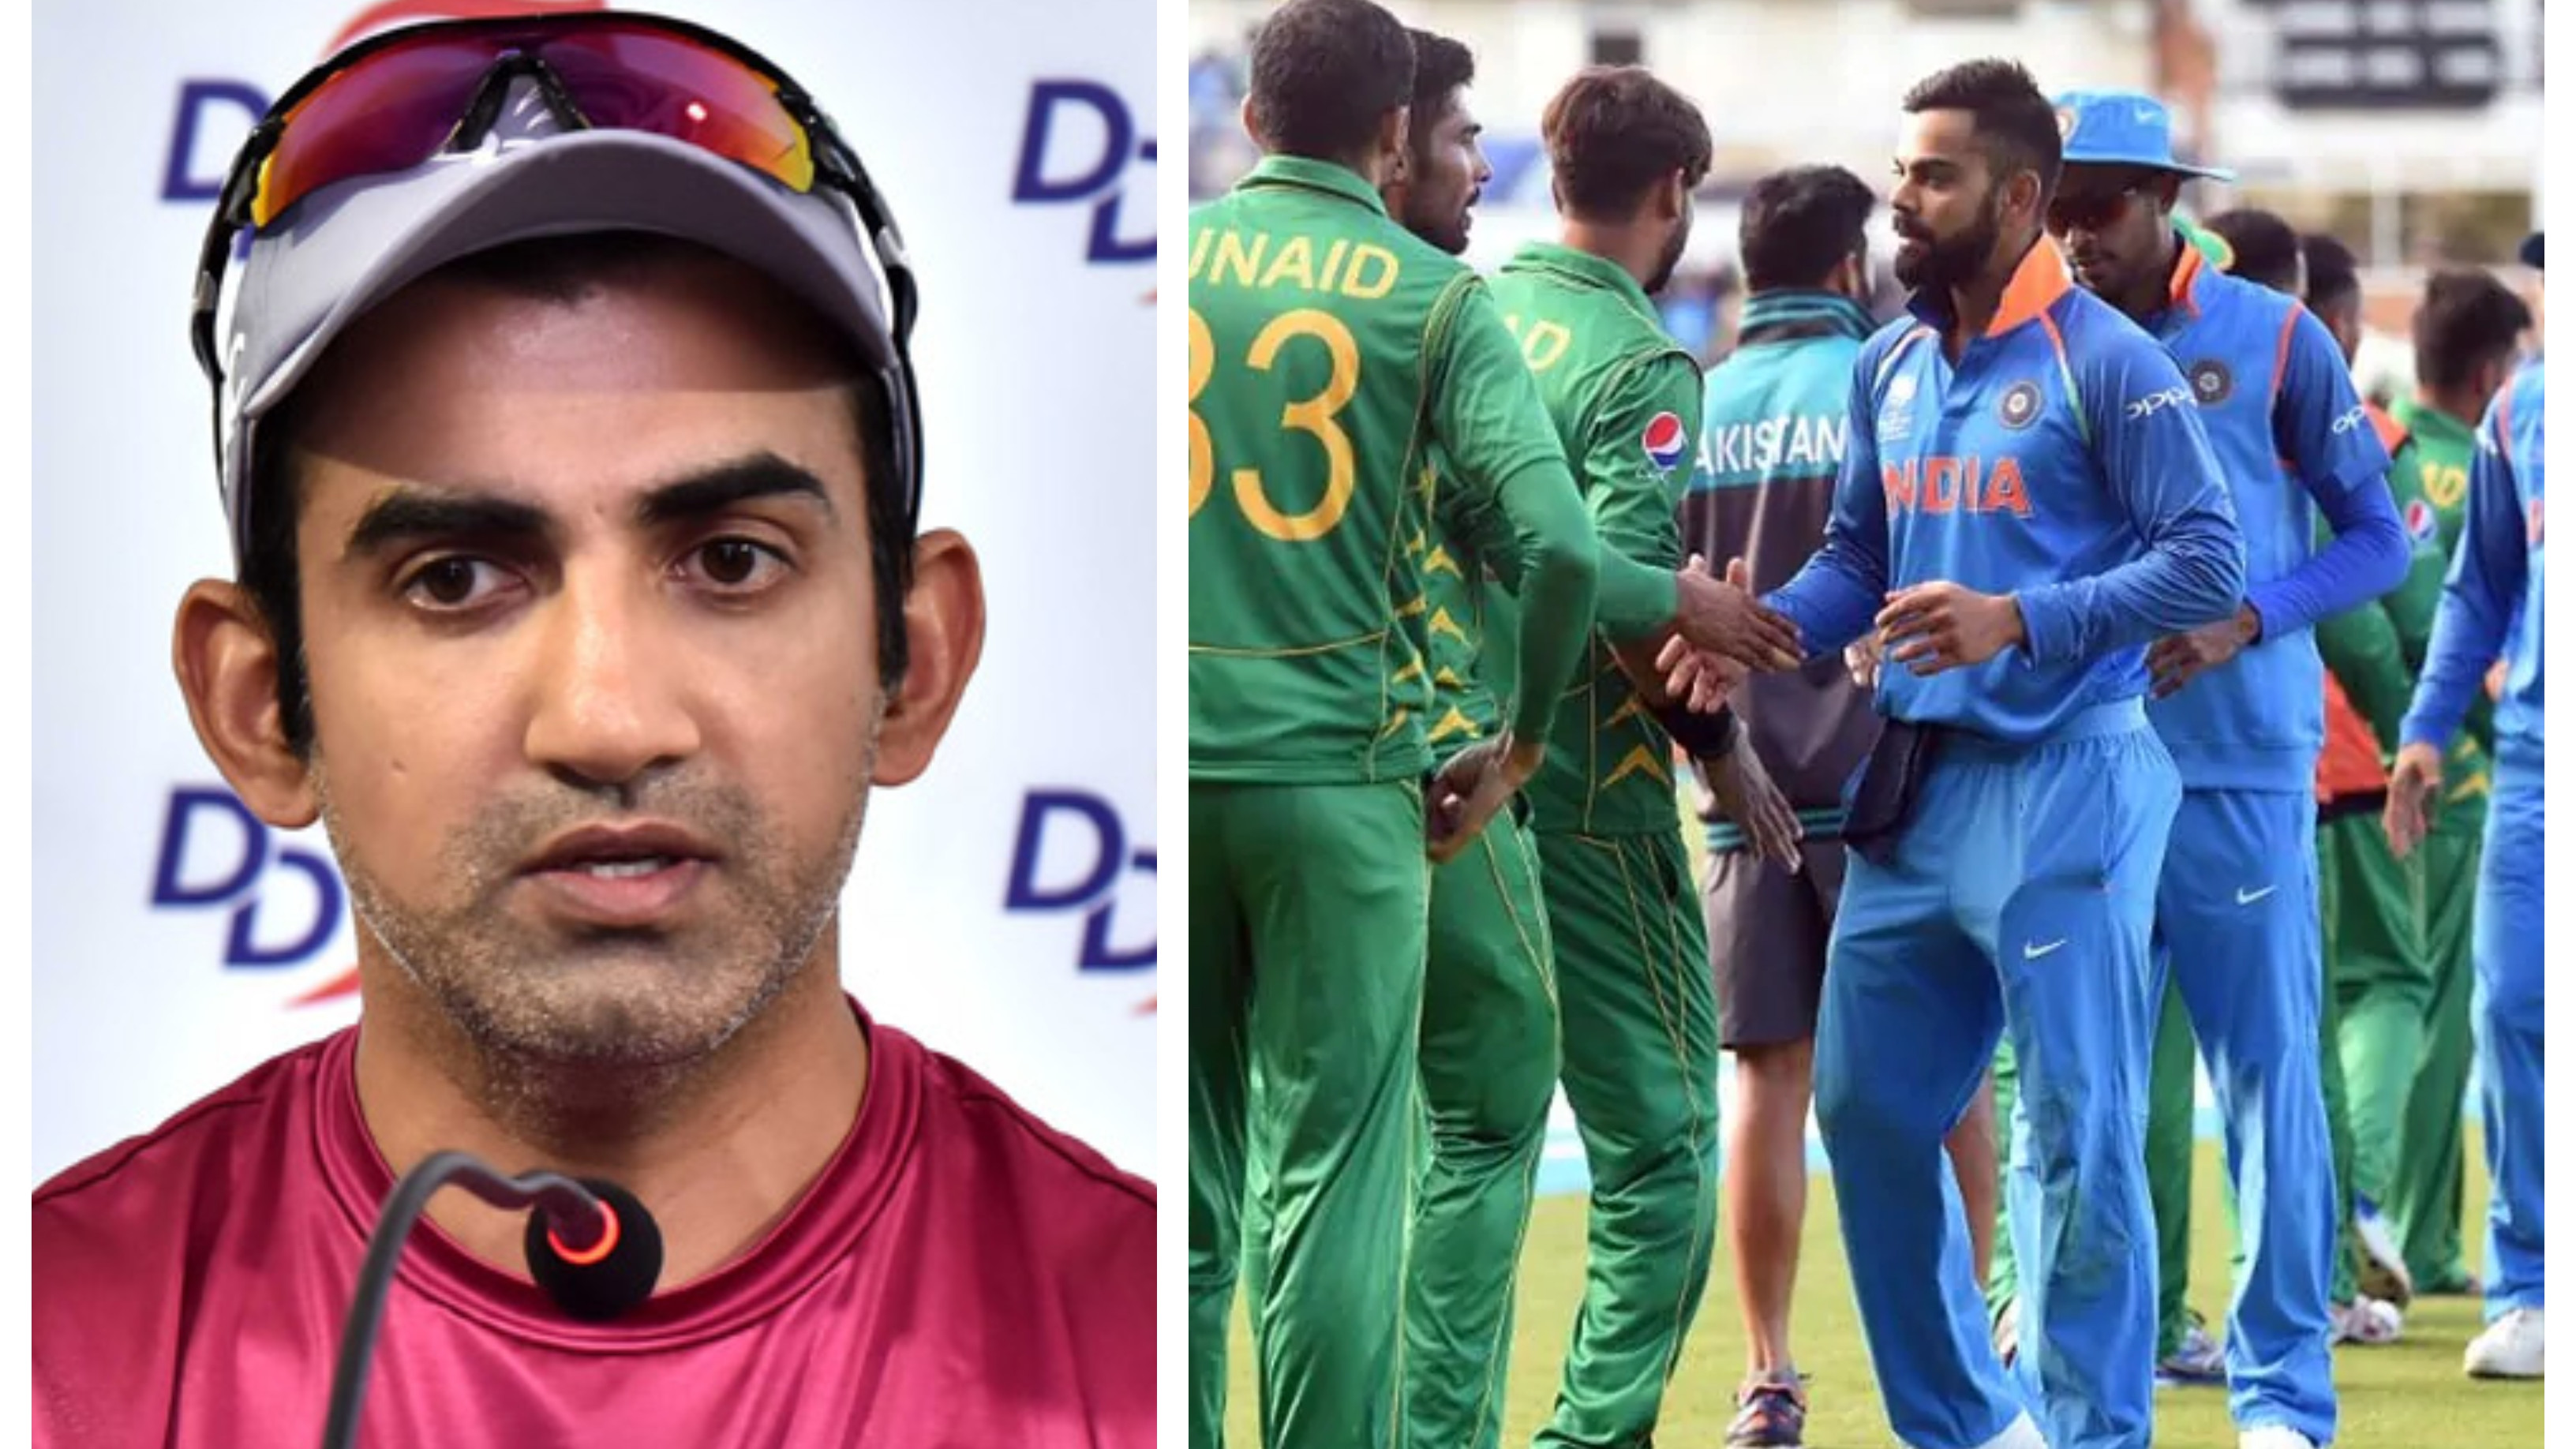 CWC 2019: India should be ready to boycott World Cup final against Pakistan, says Gautam Gambhir